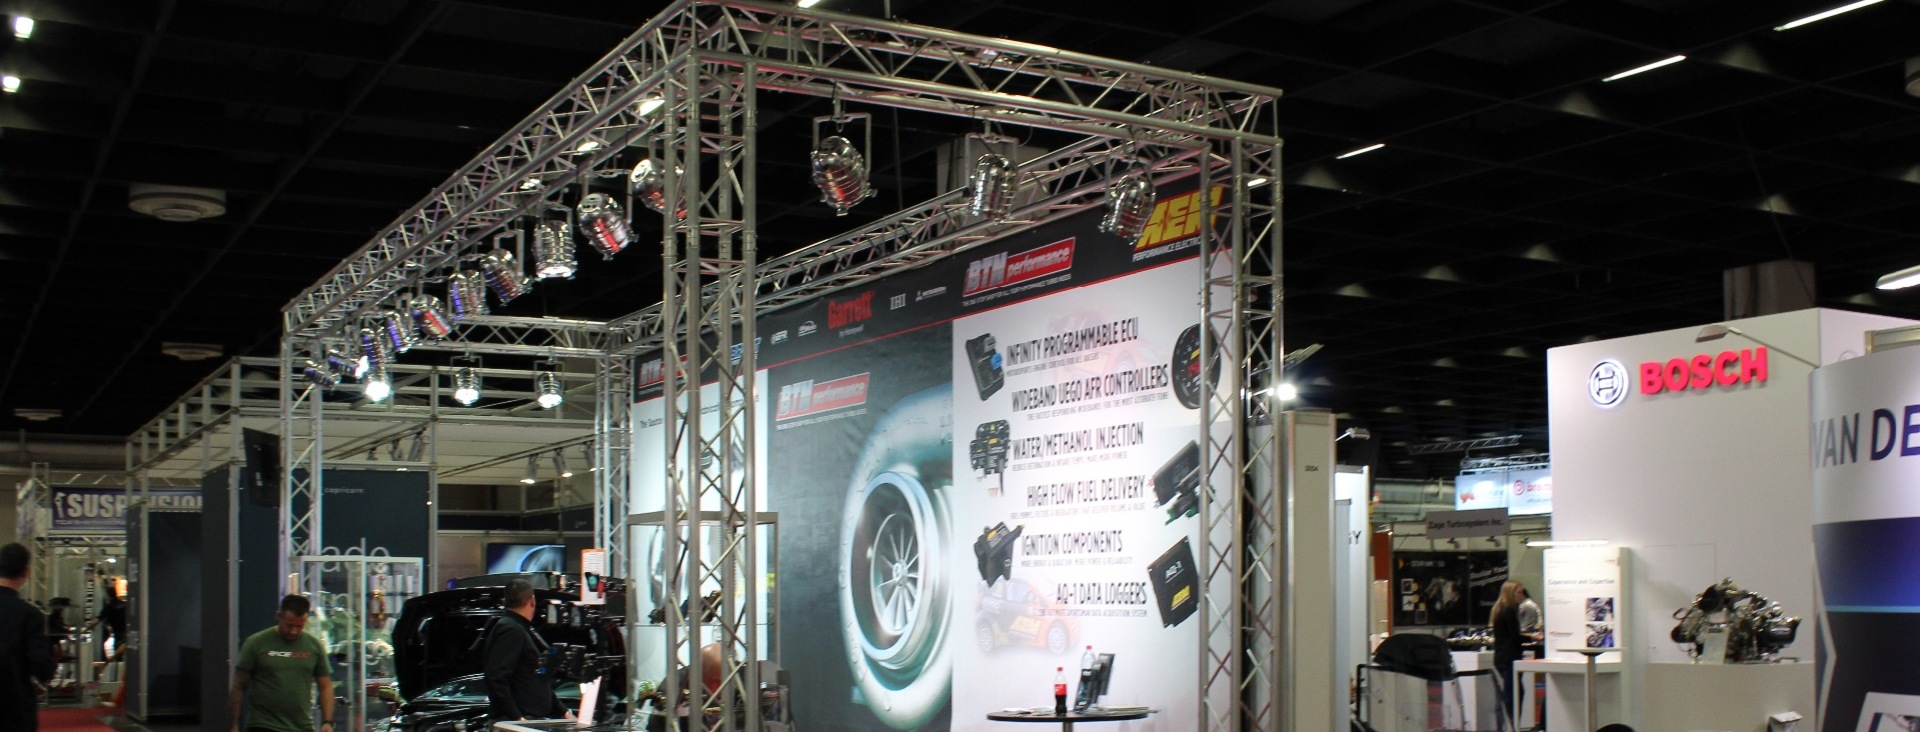 Exhibition Stand Supplies : Exhibition stand and equipment hire birmingham nec excel